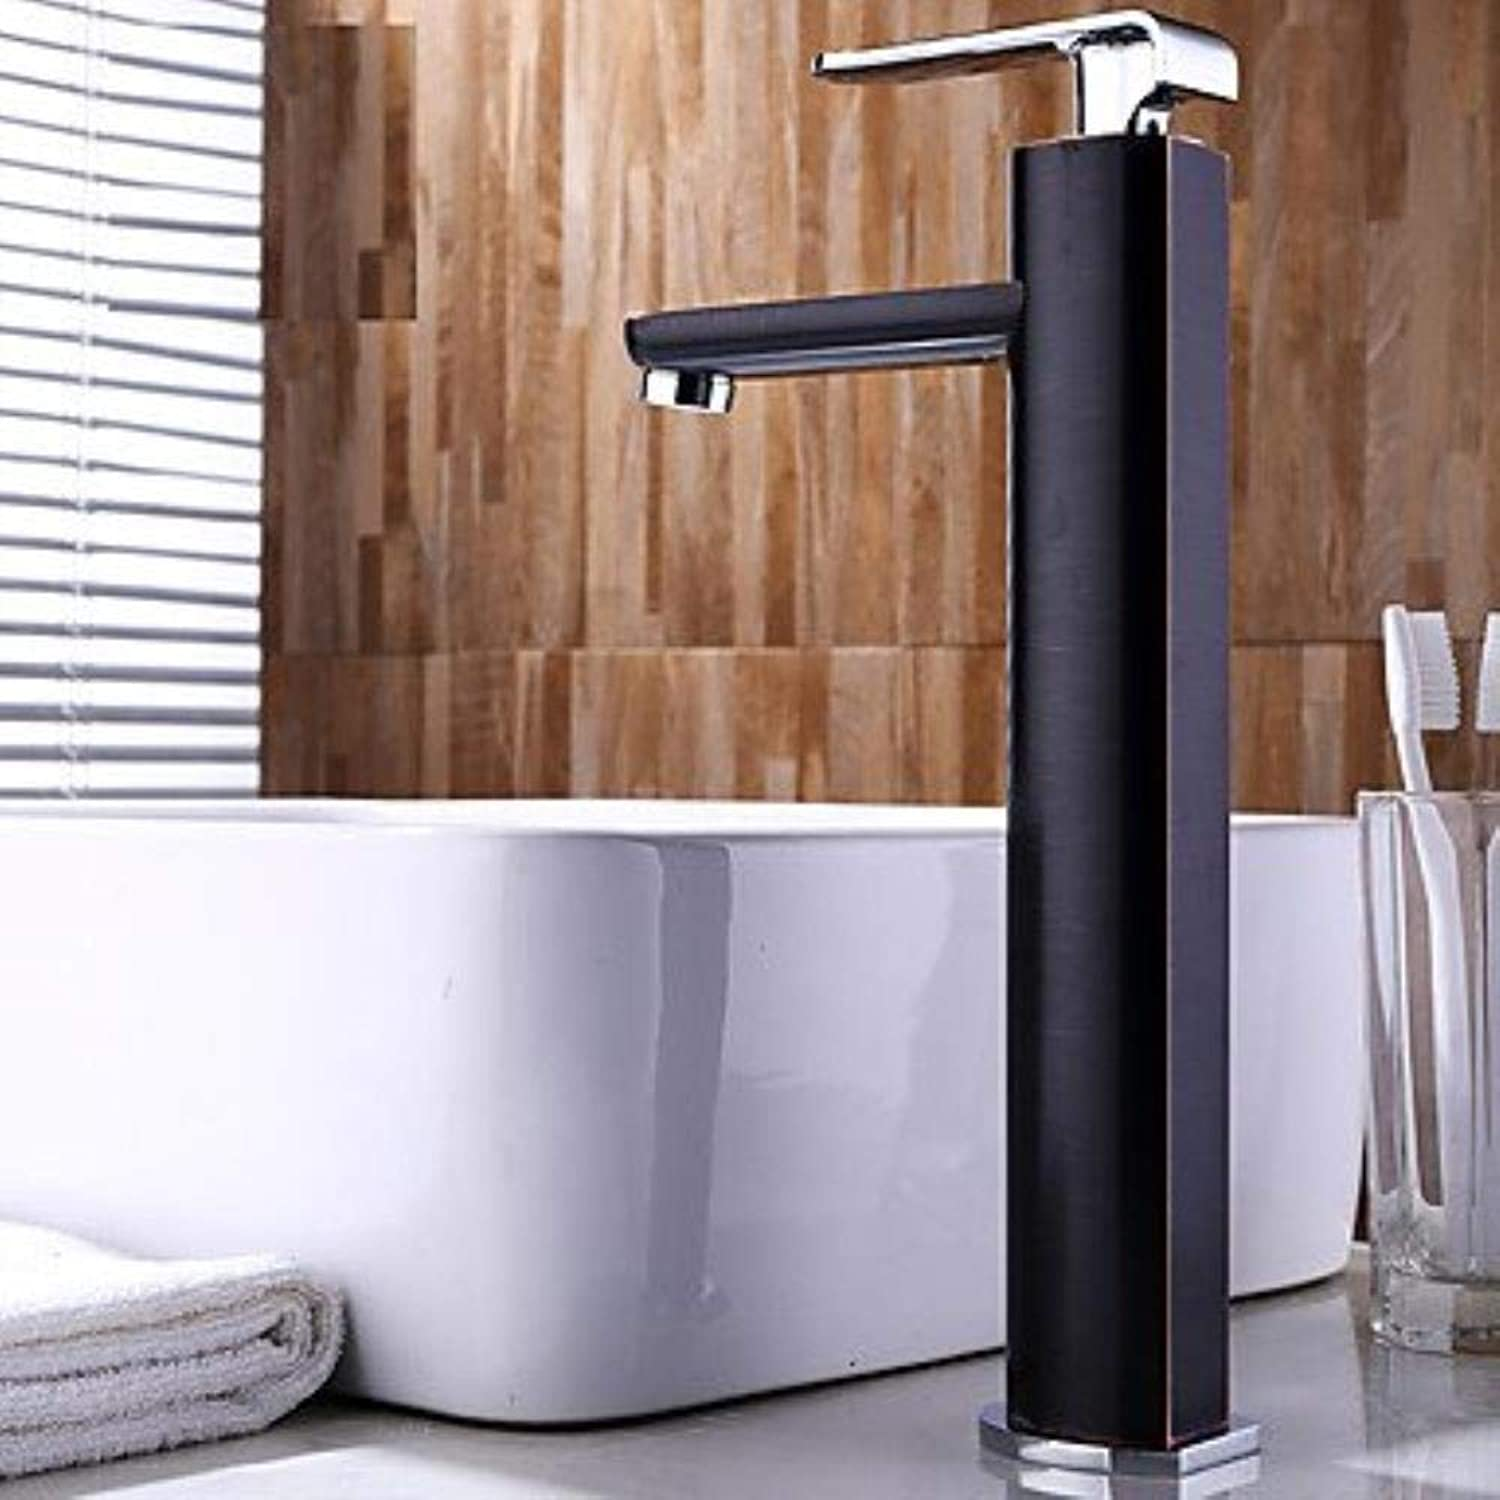 Art Deco Retro Centerset Widespread withCeramic Valve Single Handle One Hole forOil-Rubbed Bronze, Bathroom Sink Faucet